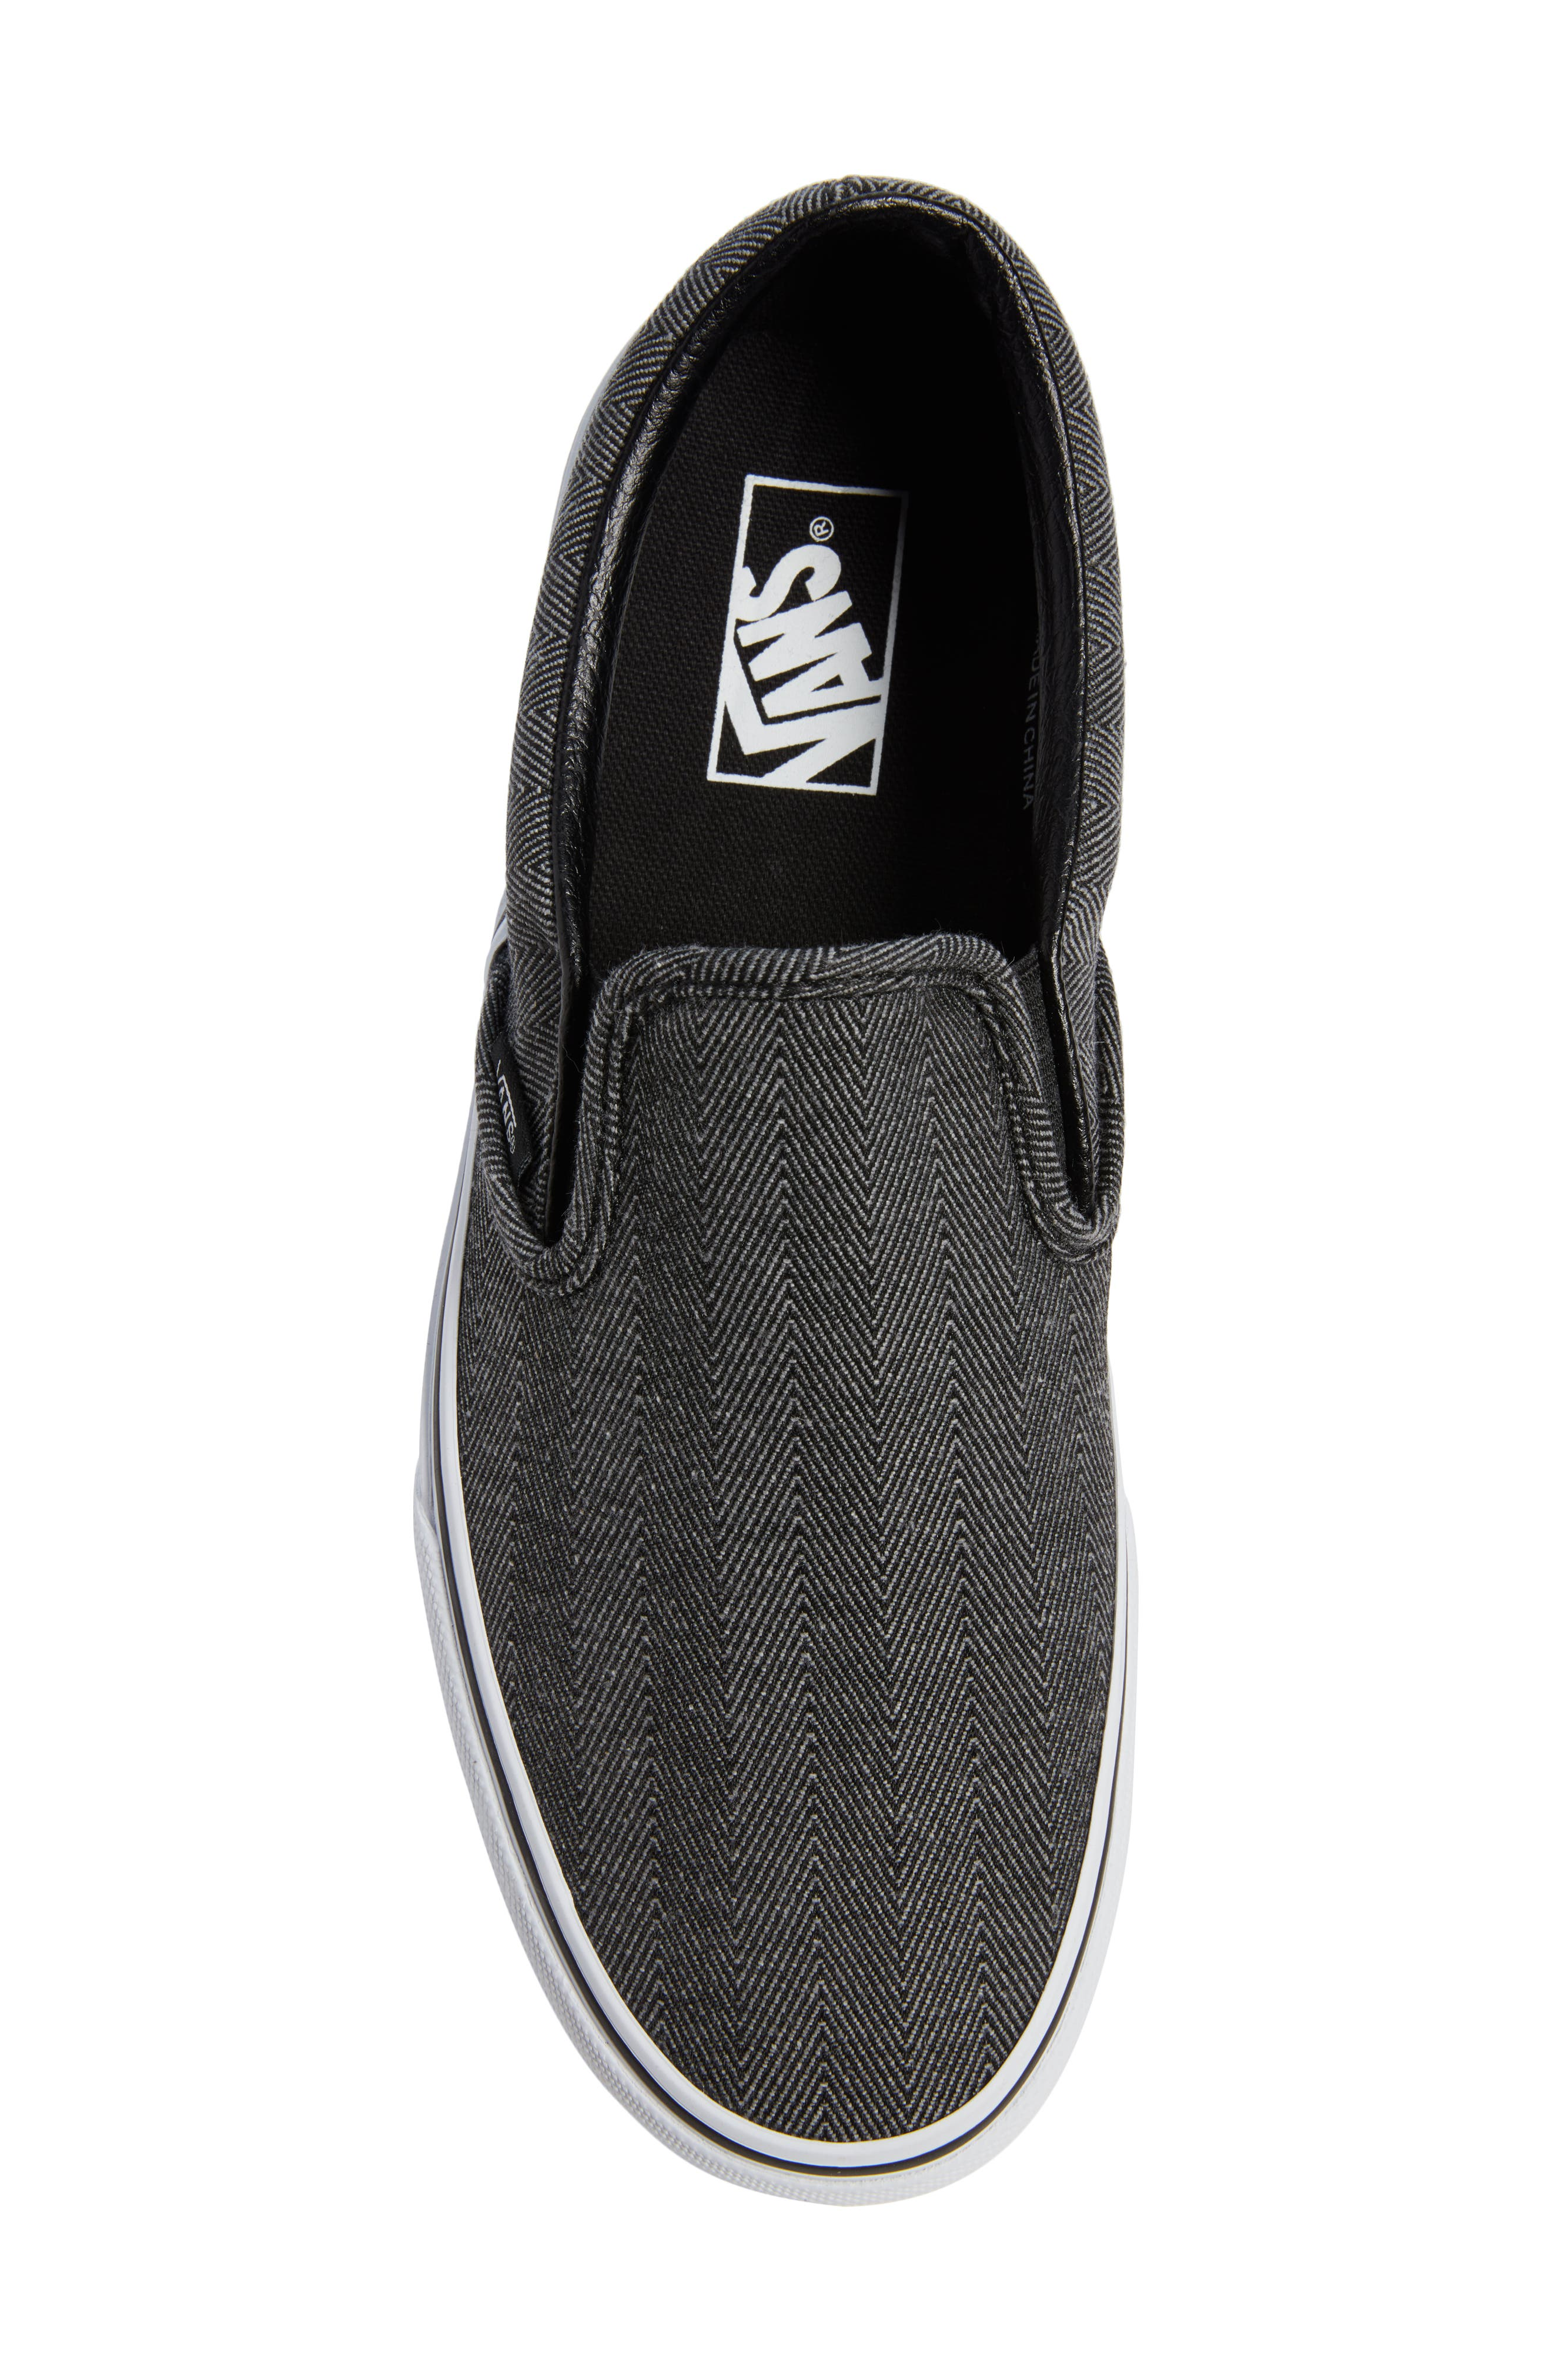 'Classic' Slip-On Sneaker,                             Alternate thumbnail 5, color,                             019